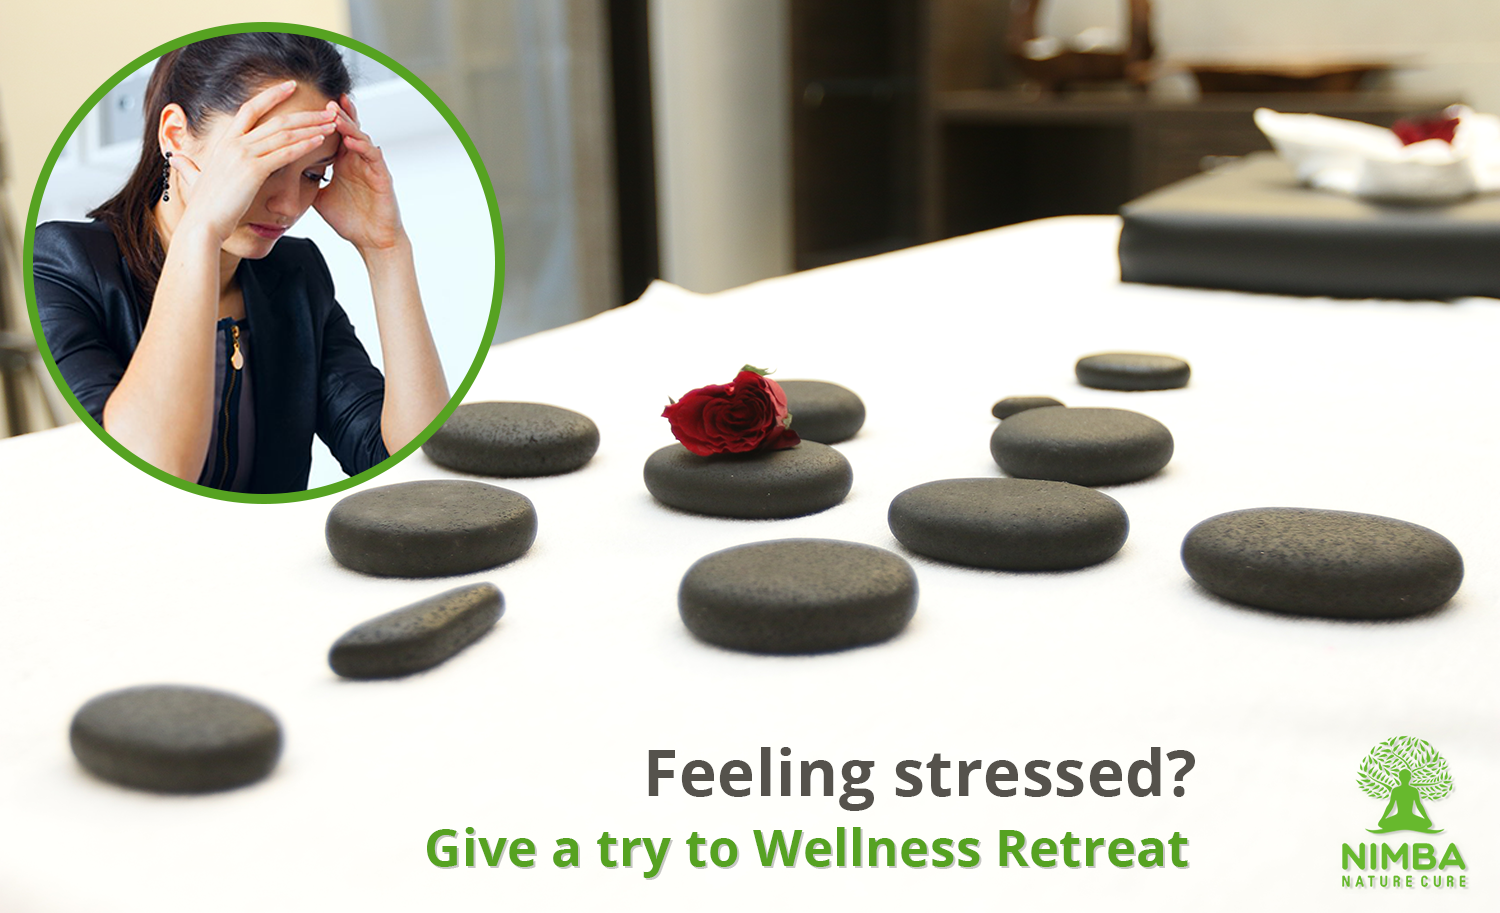 • Feeling stressed? Give a try to Wellness Retreat